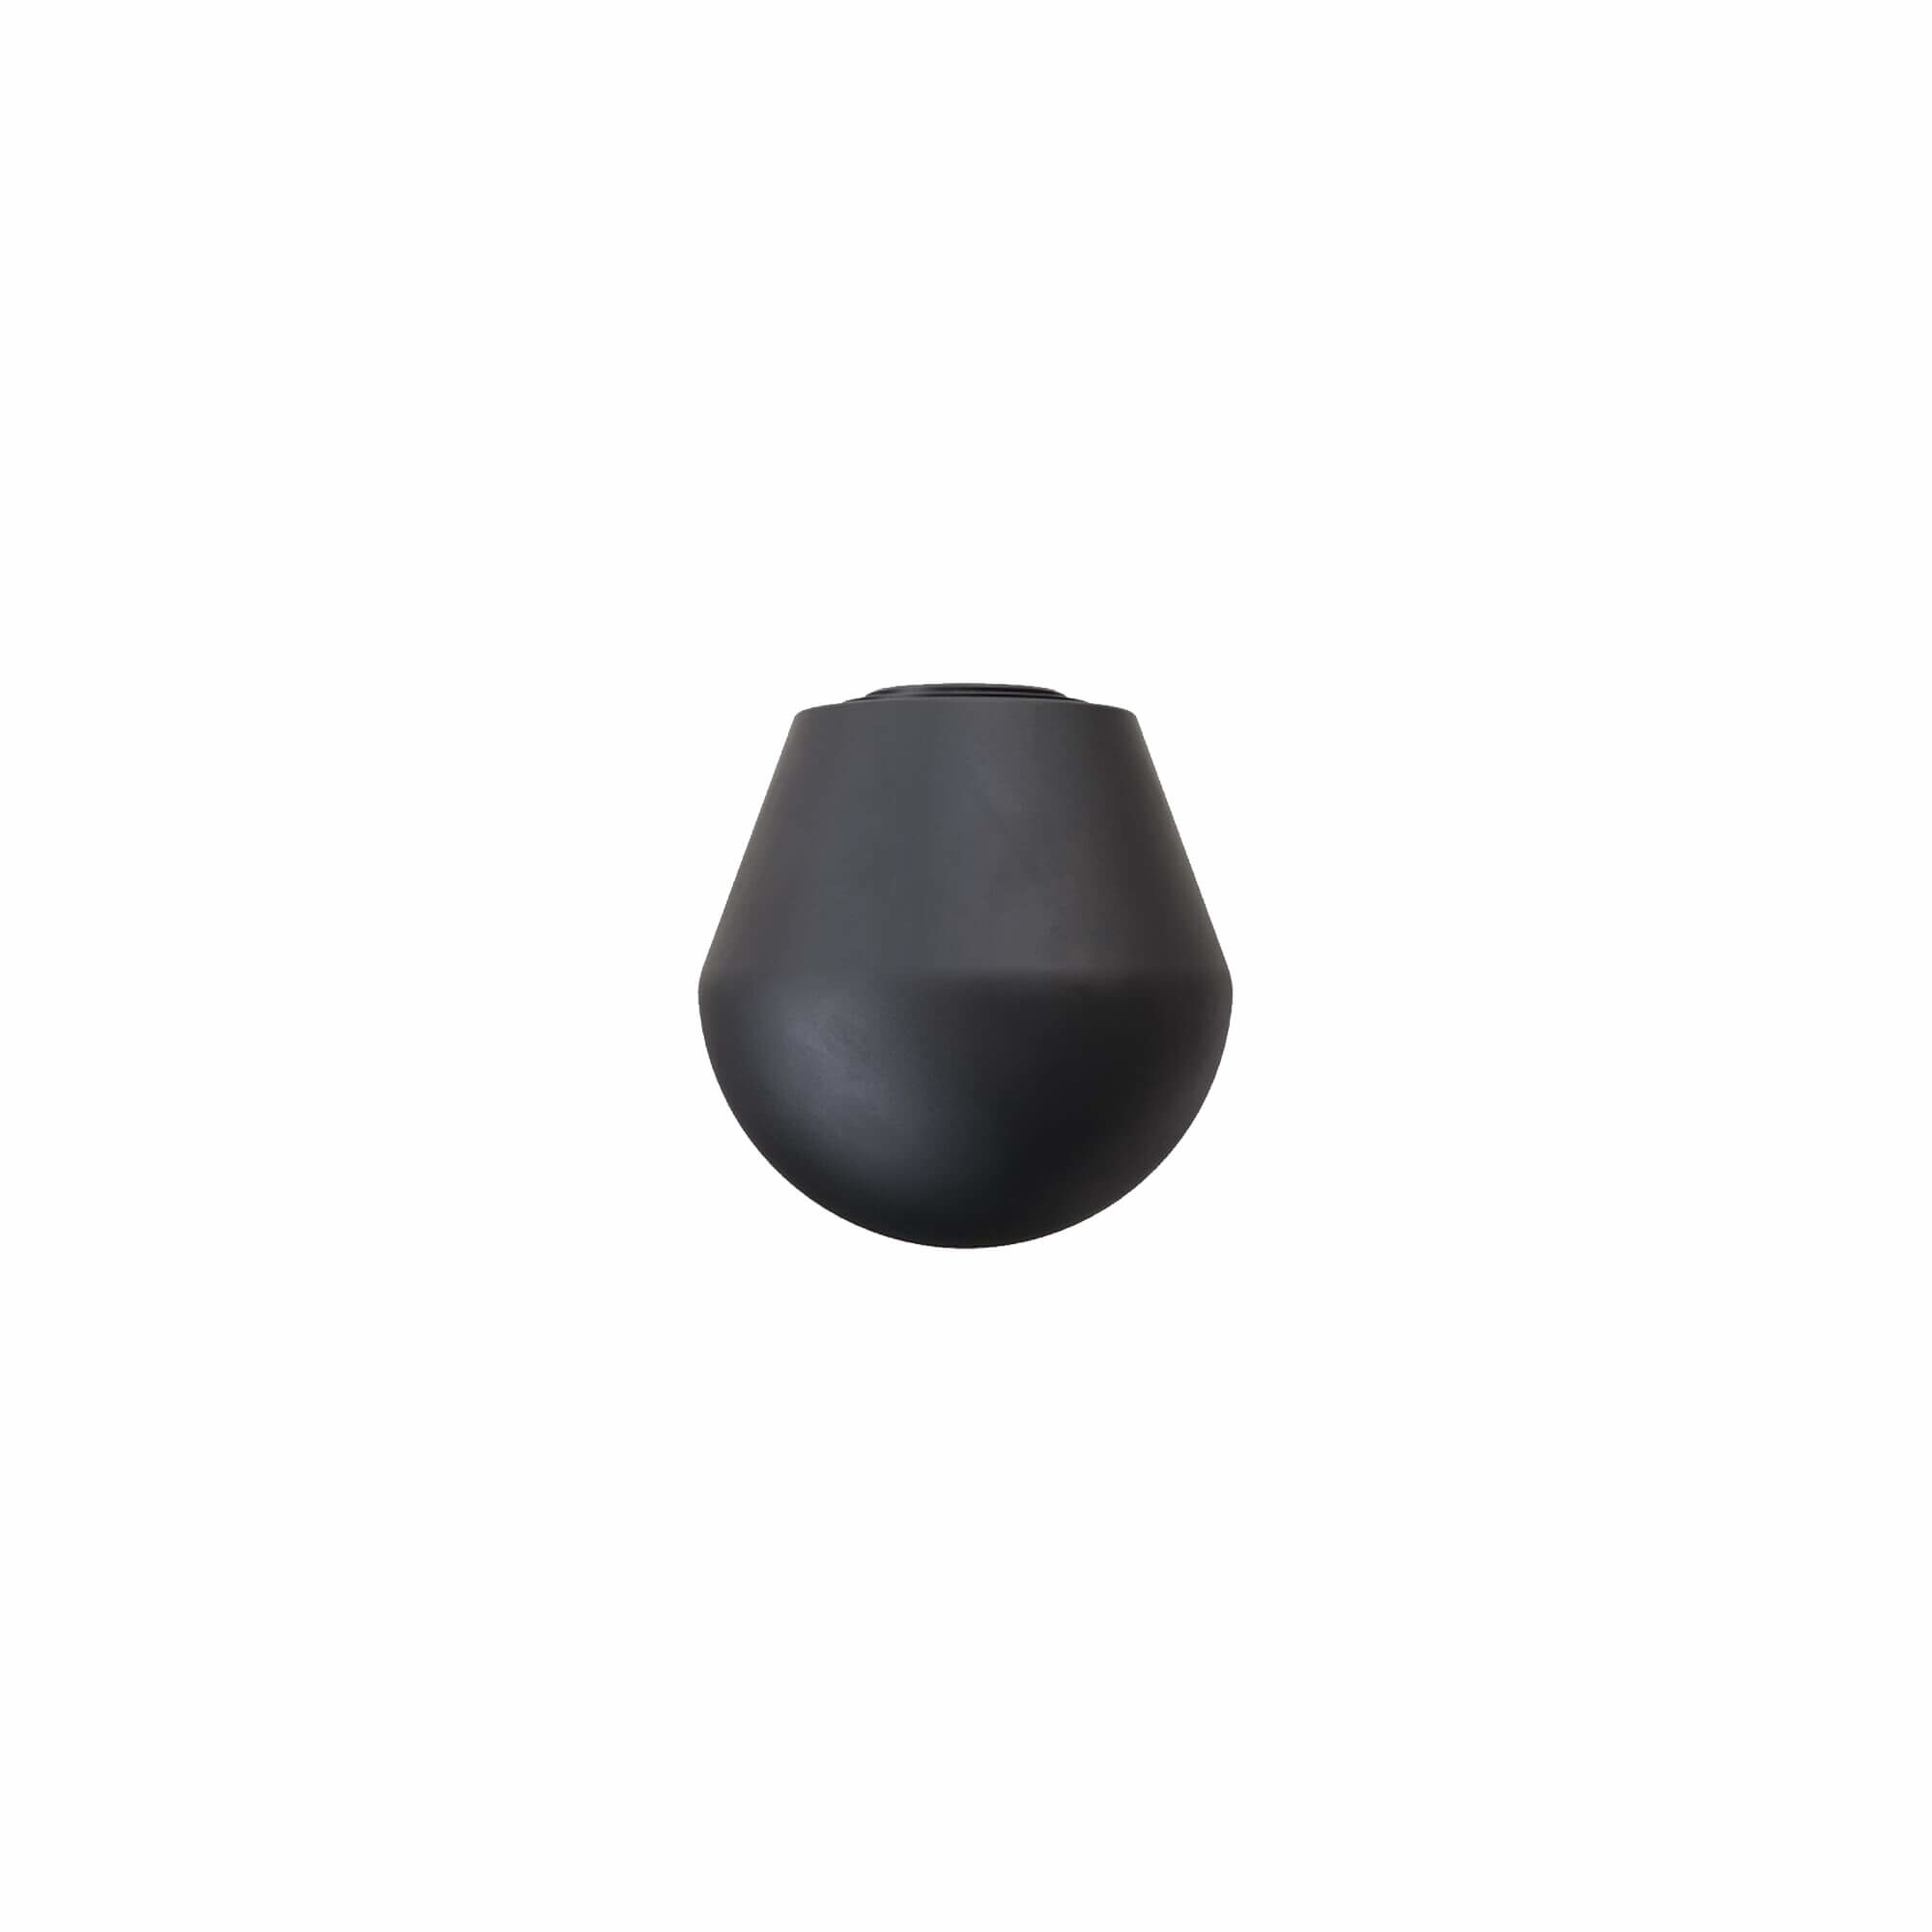 Large Ball Attachment For G3, G3 Pro-1